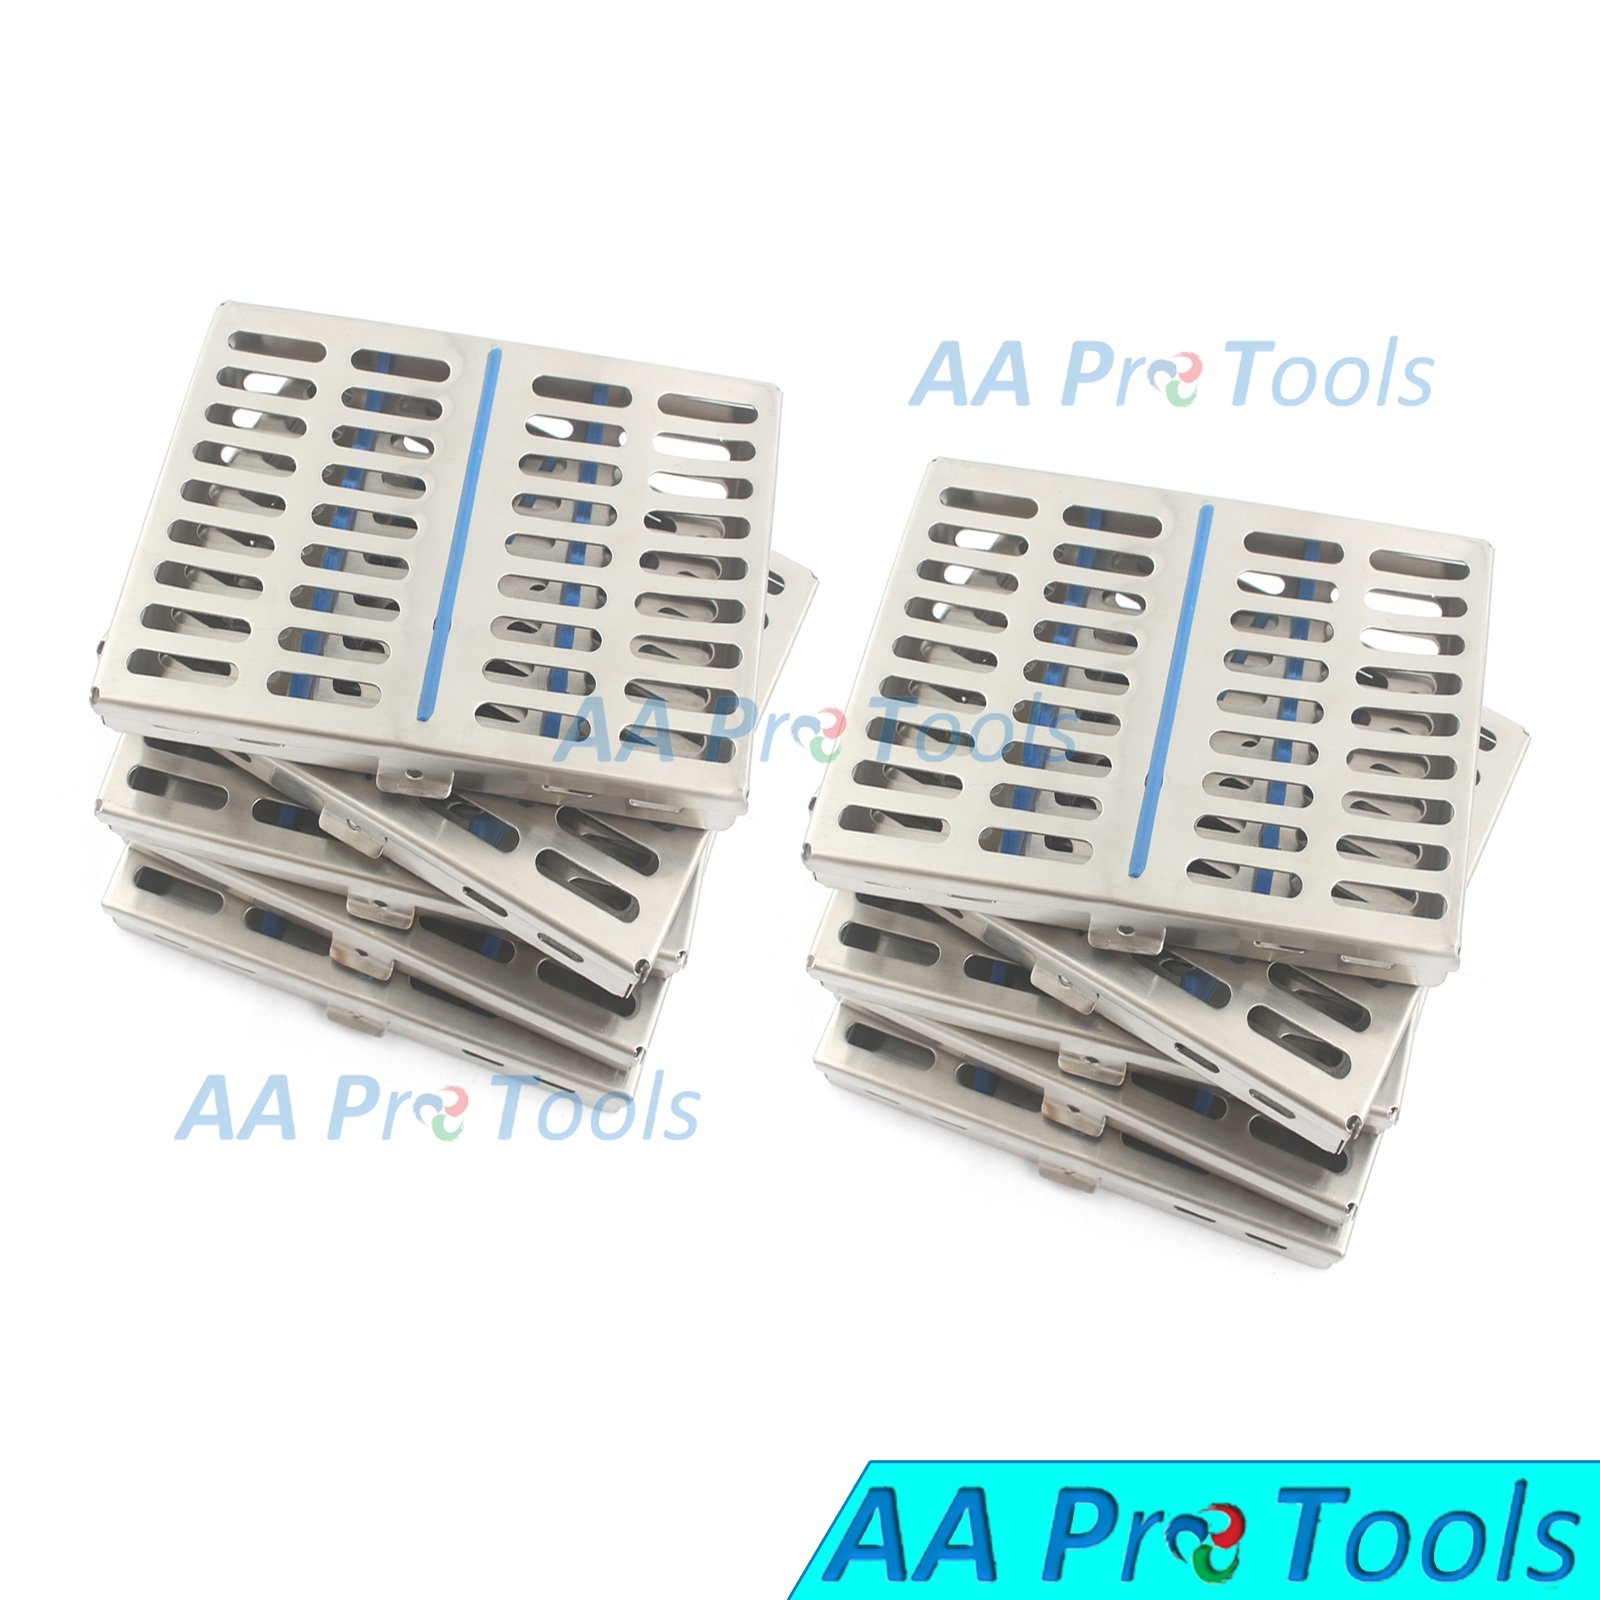 AA PRO GERMAN GRADE STEEL SET OF 10 DENTAL AUTOCLAVE STERILIZATION CASSETTE RACK BOX TRAY FOR 10 INSTRUMENT A+ QUALITY